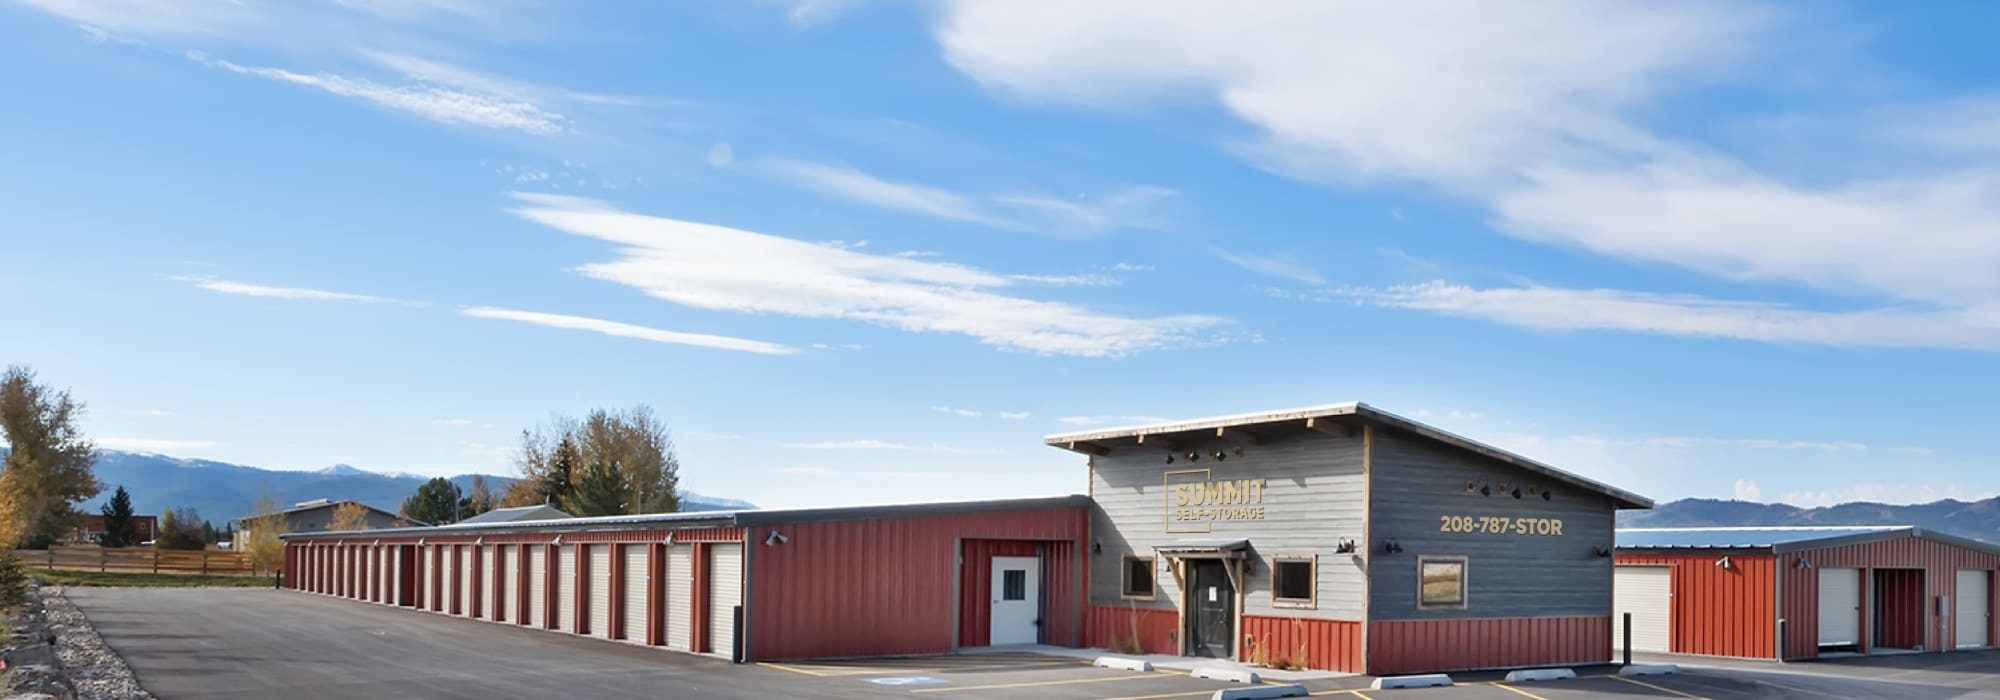 Self storage in Victor ID